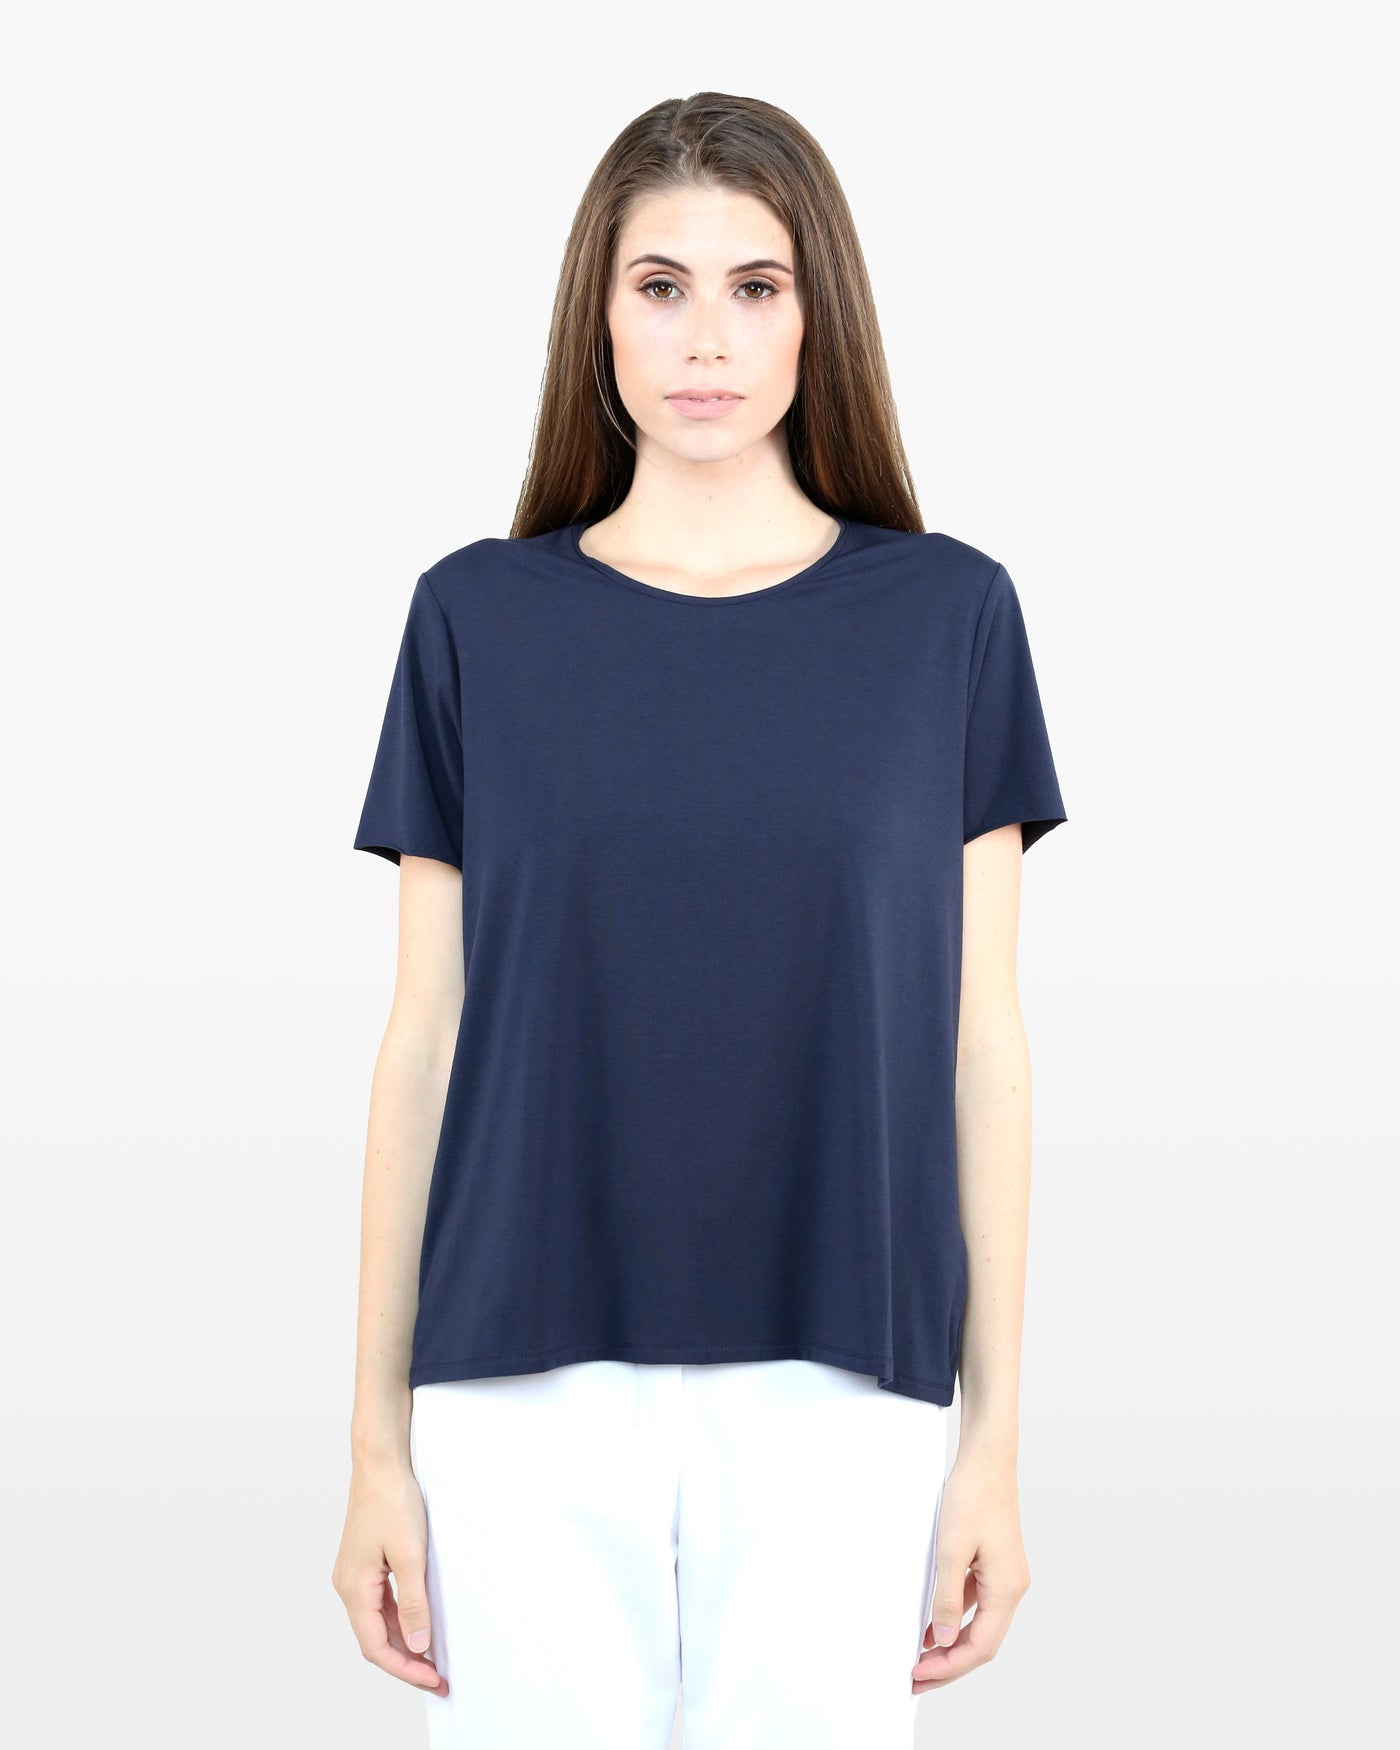 Avery Tee STJ in marine